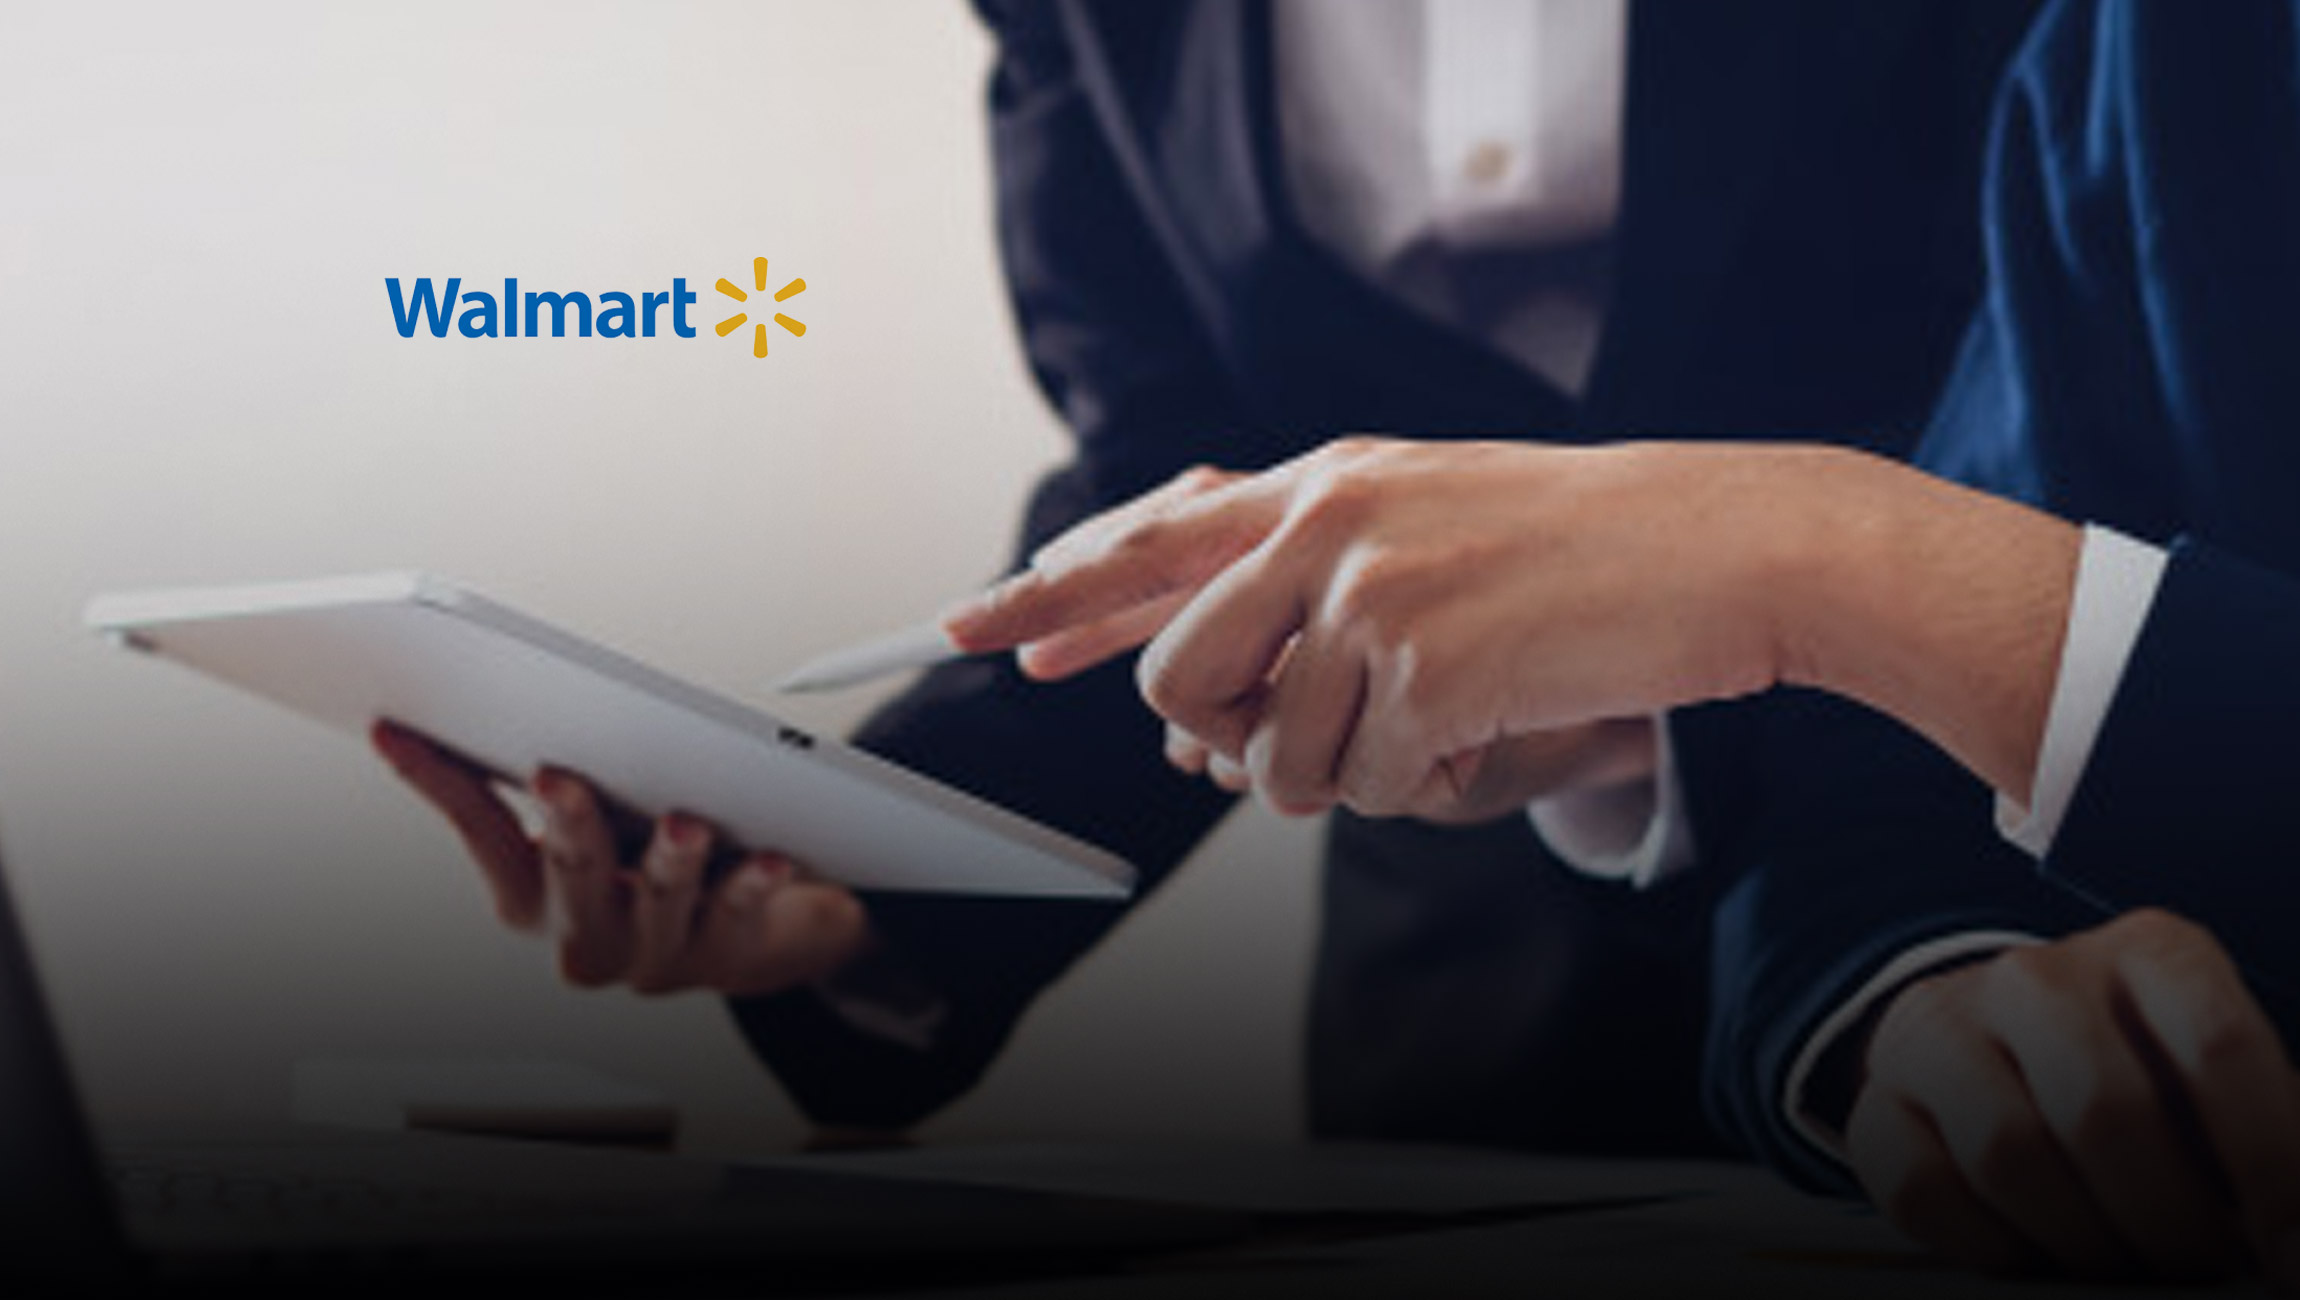 Walmart Selects 850 Entrepreneurs to Pitch their U.S. Manufactured Products at First-Ever Virtual Open Call Event